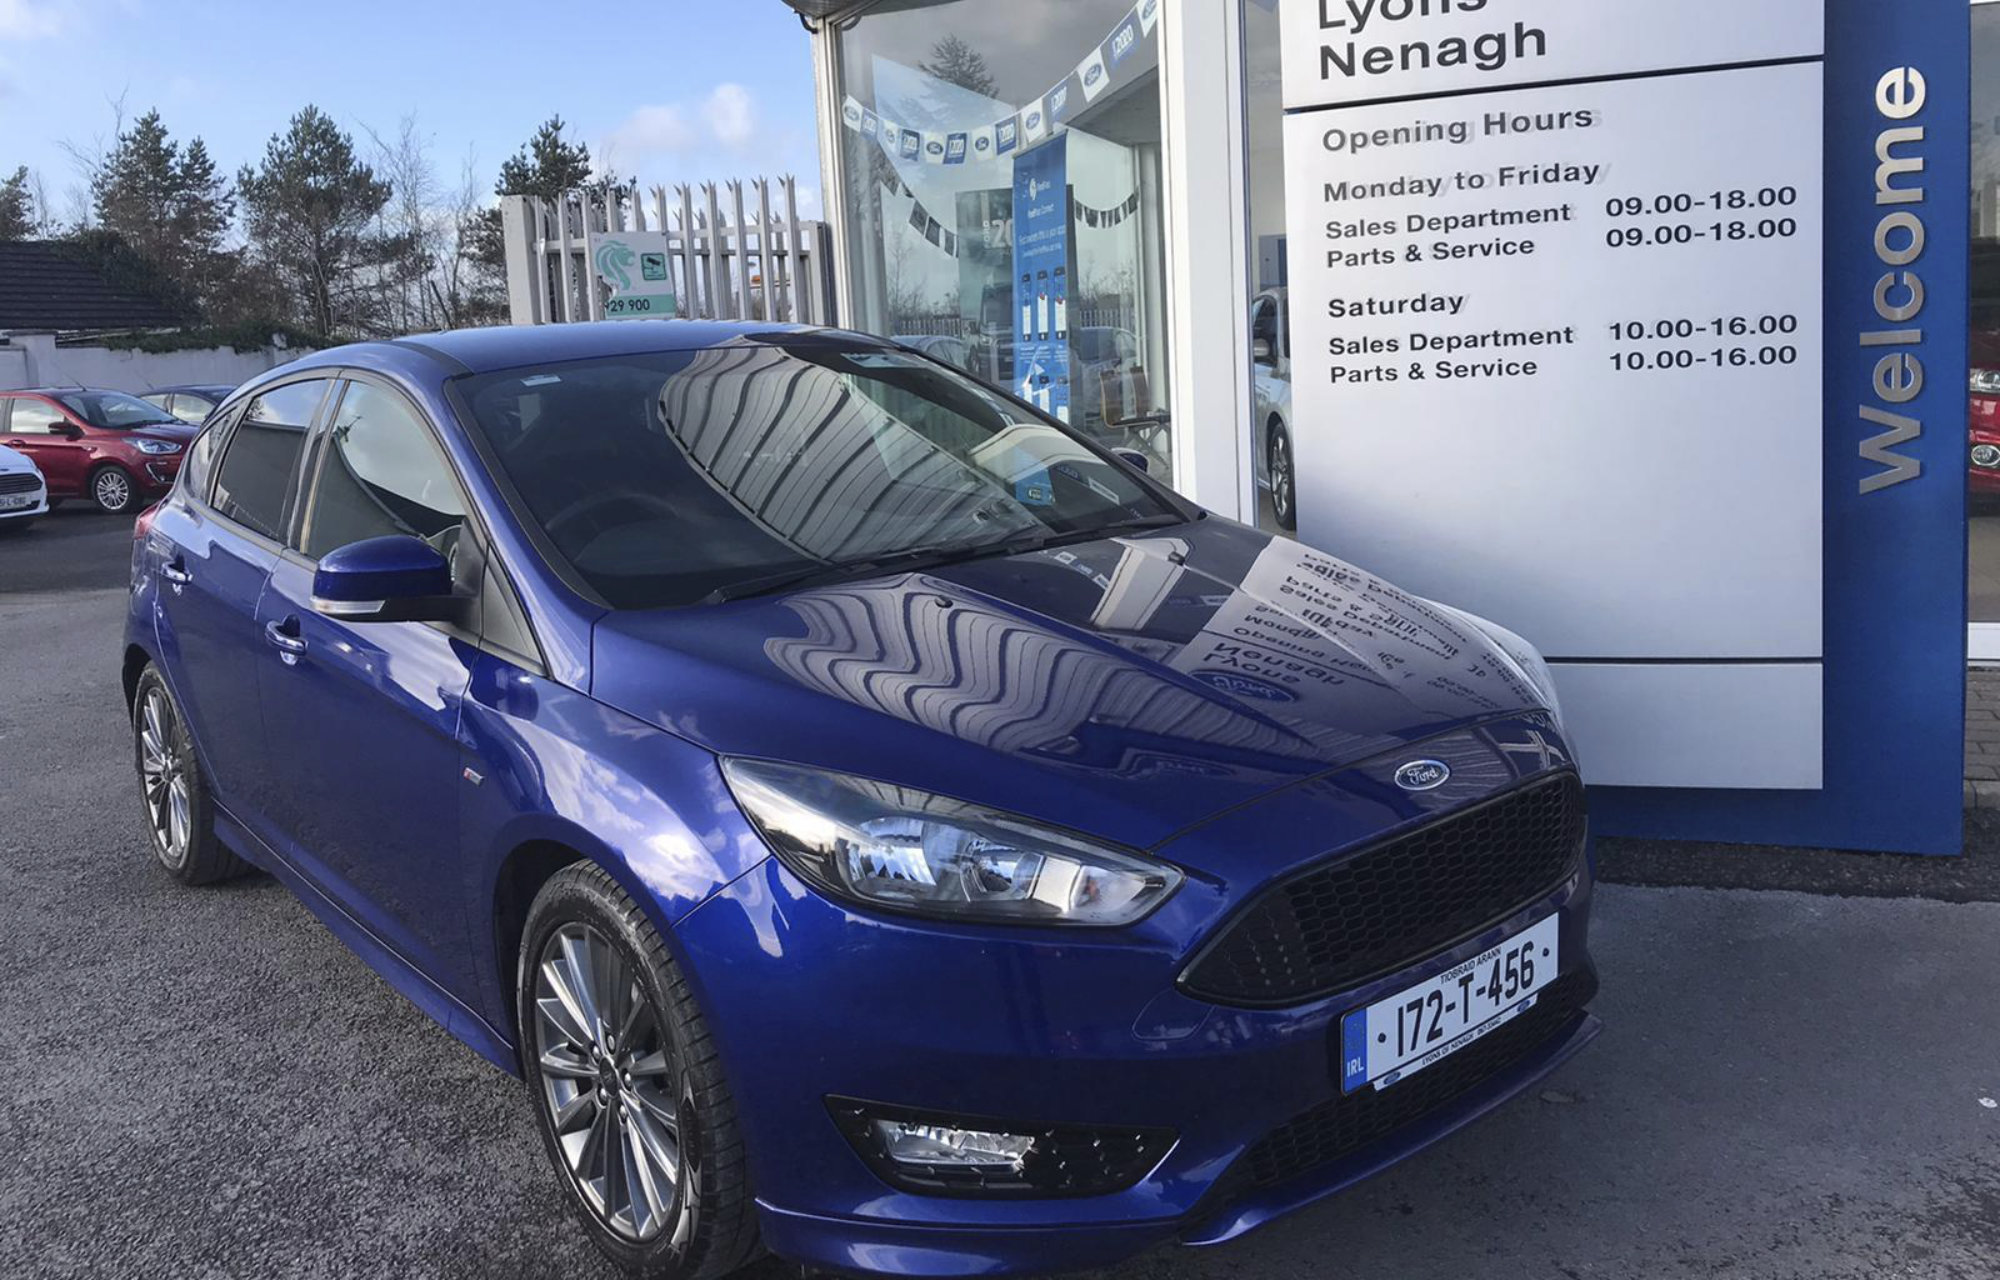 2017 Ford Focus, Lyons of Nenagh